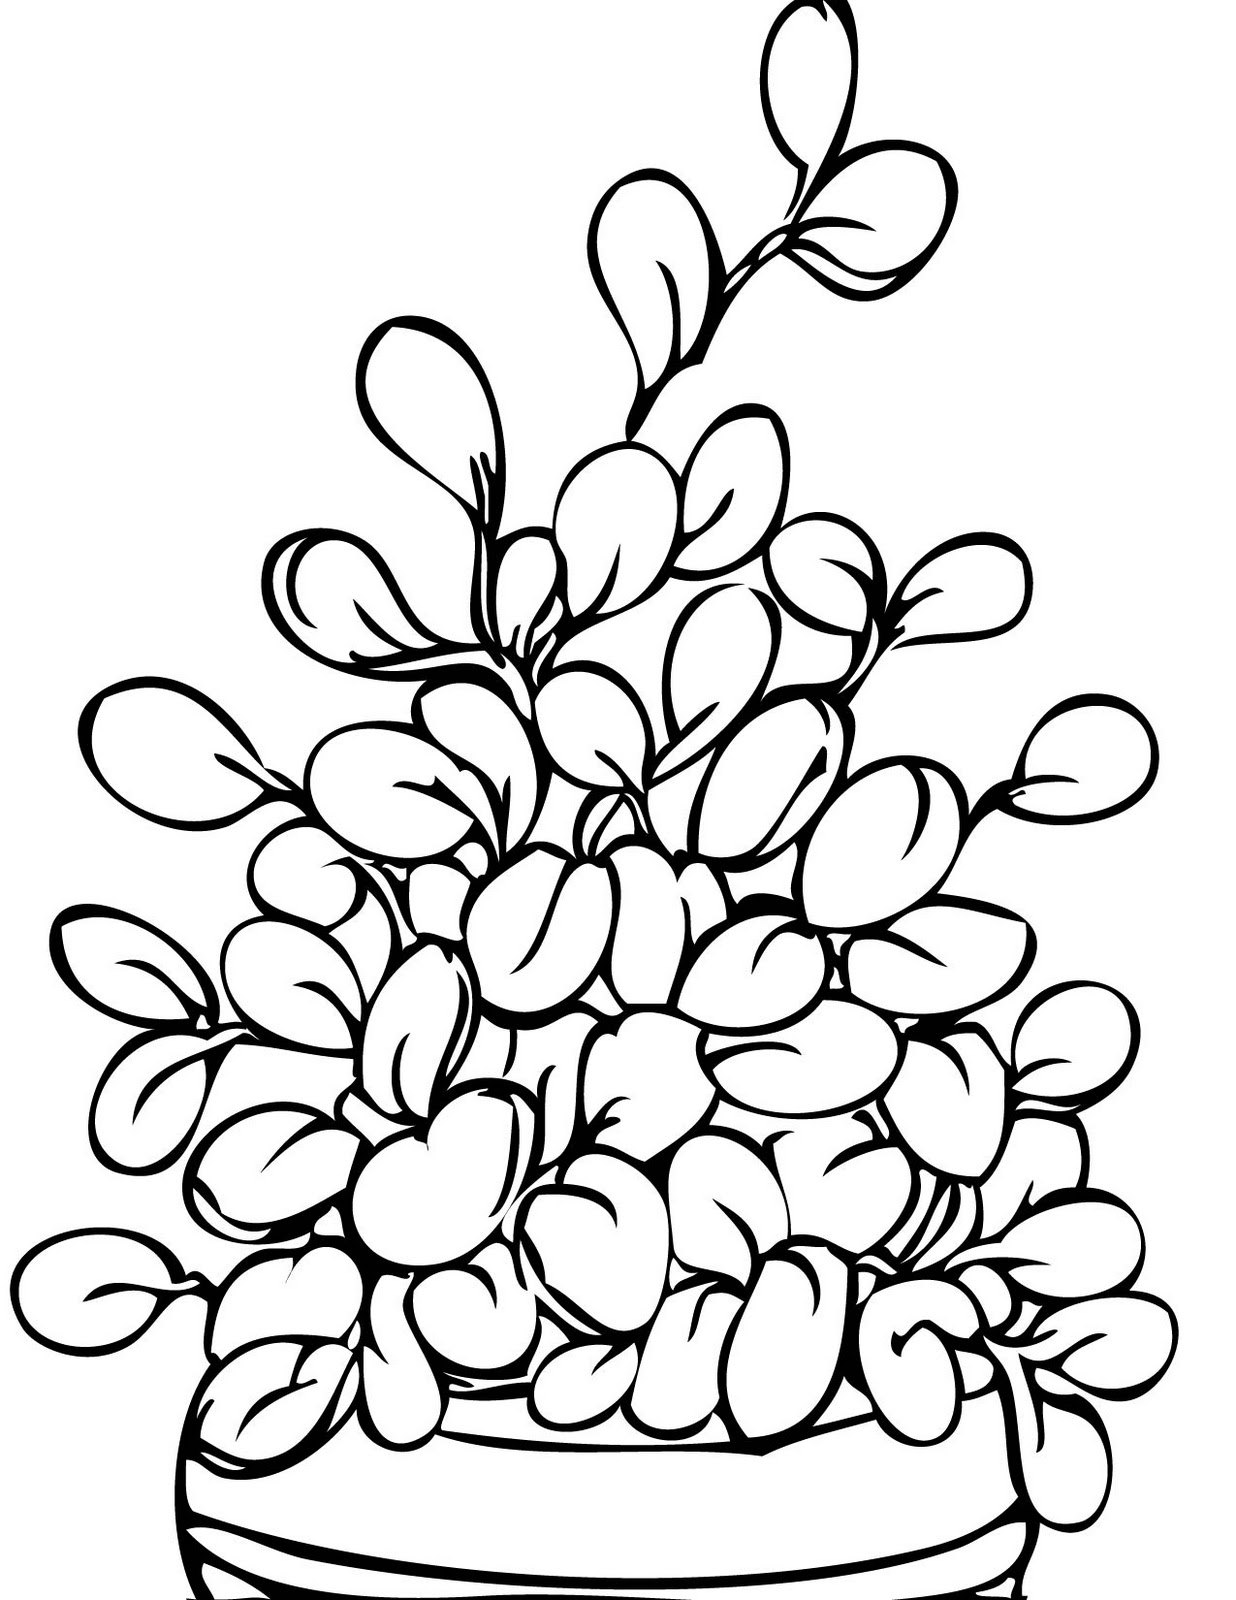 colouring pictures of plants potted plants coloring pages colouring plants pictures of